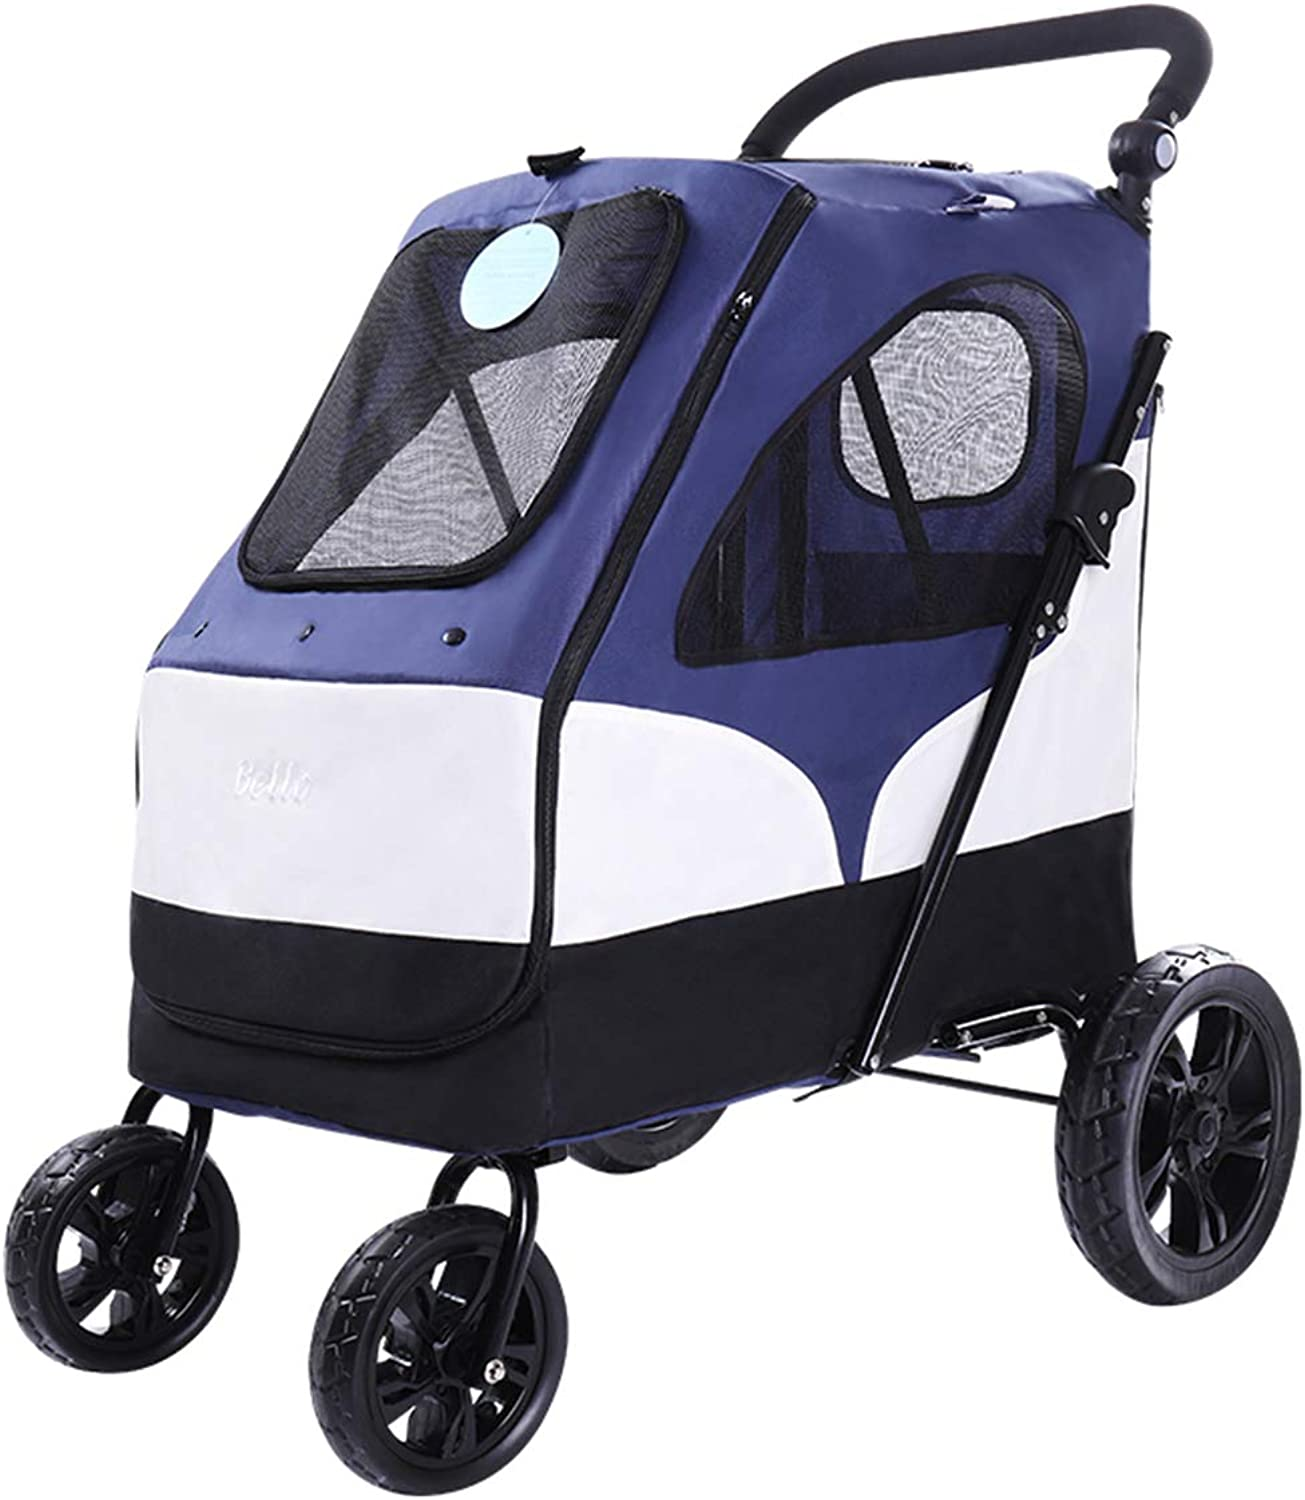 Big Pet Cart,Luxury Big Dog Cart Folding Large Space Carrying 55 Kg Out